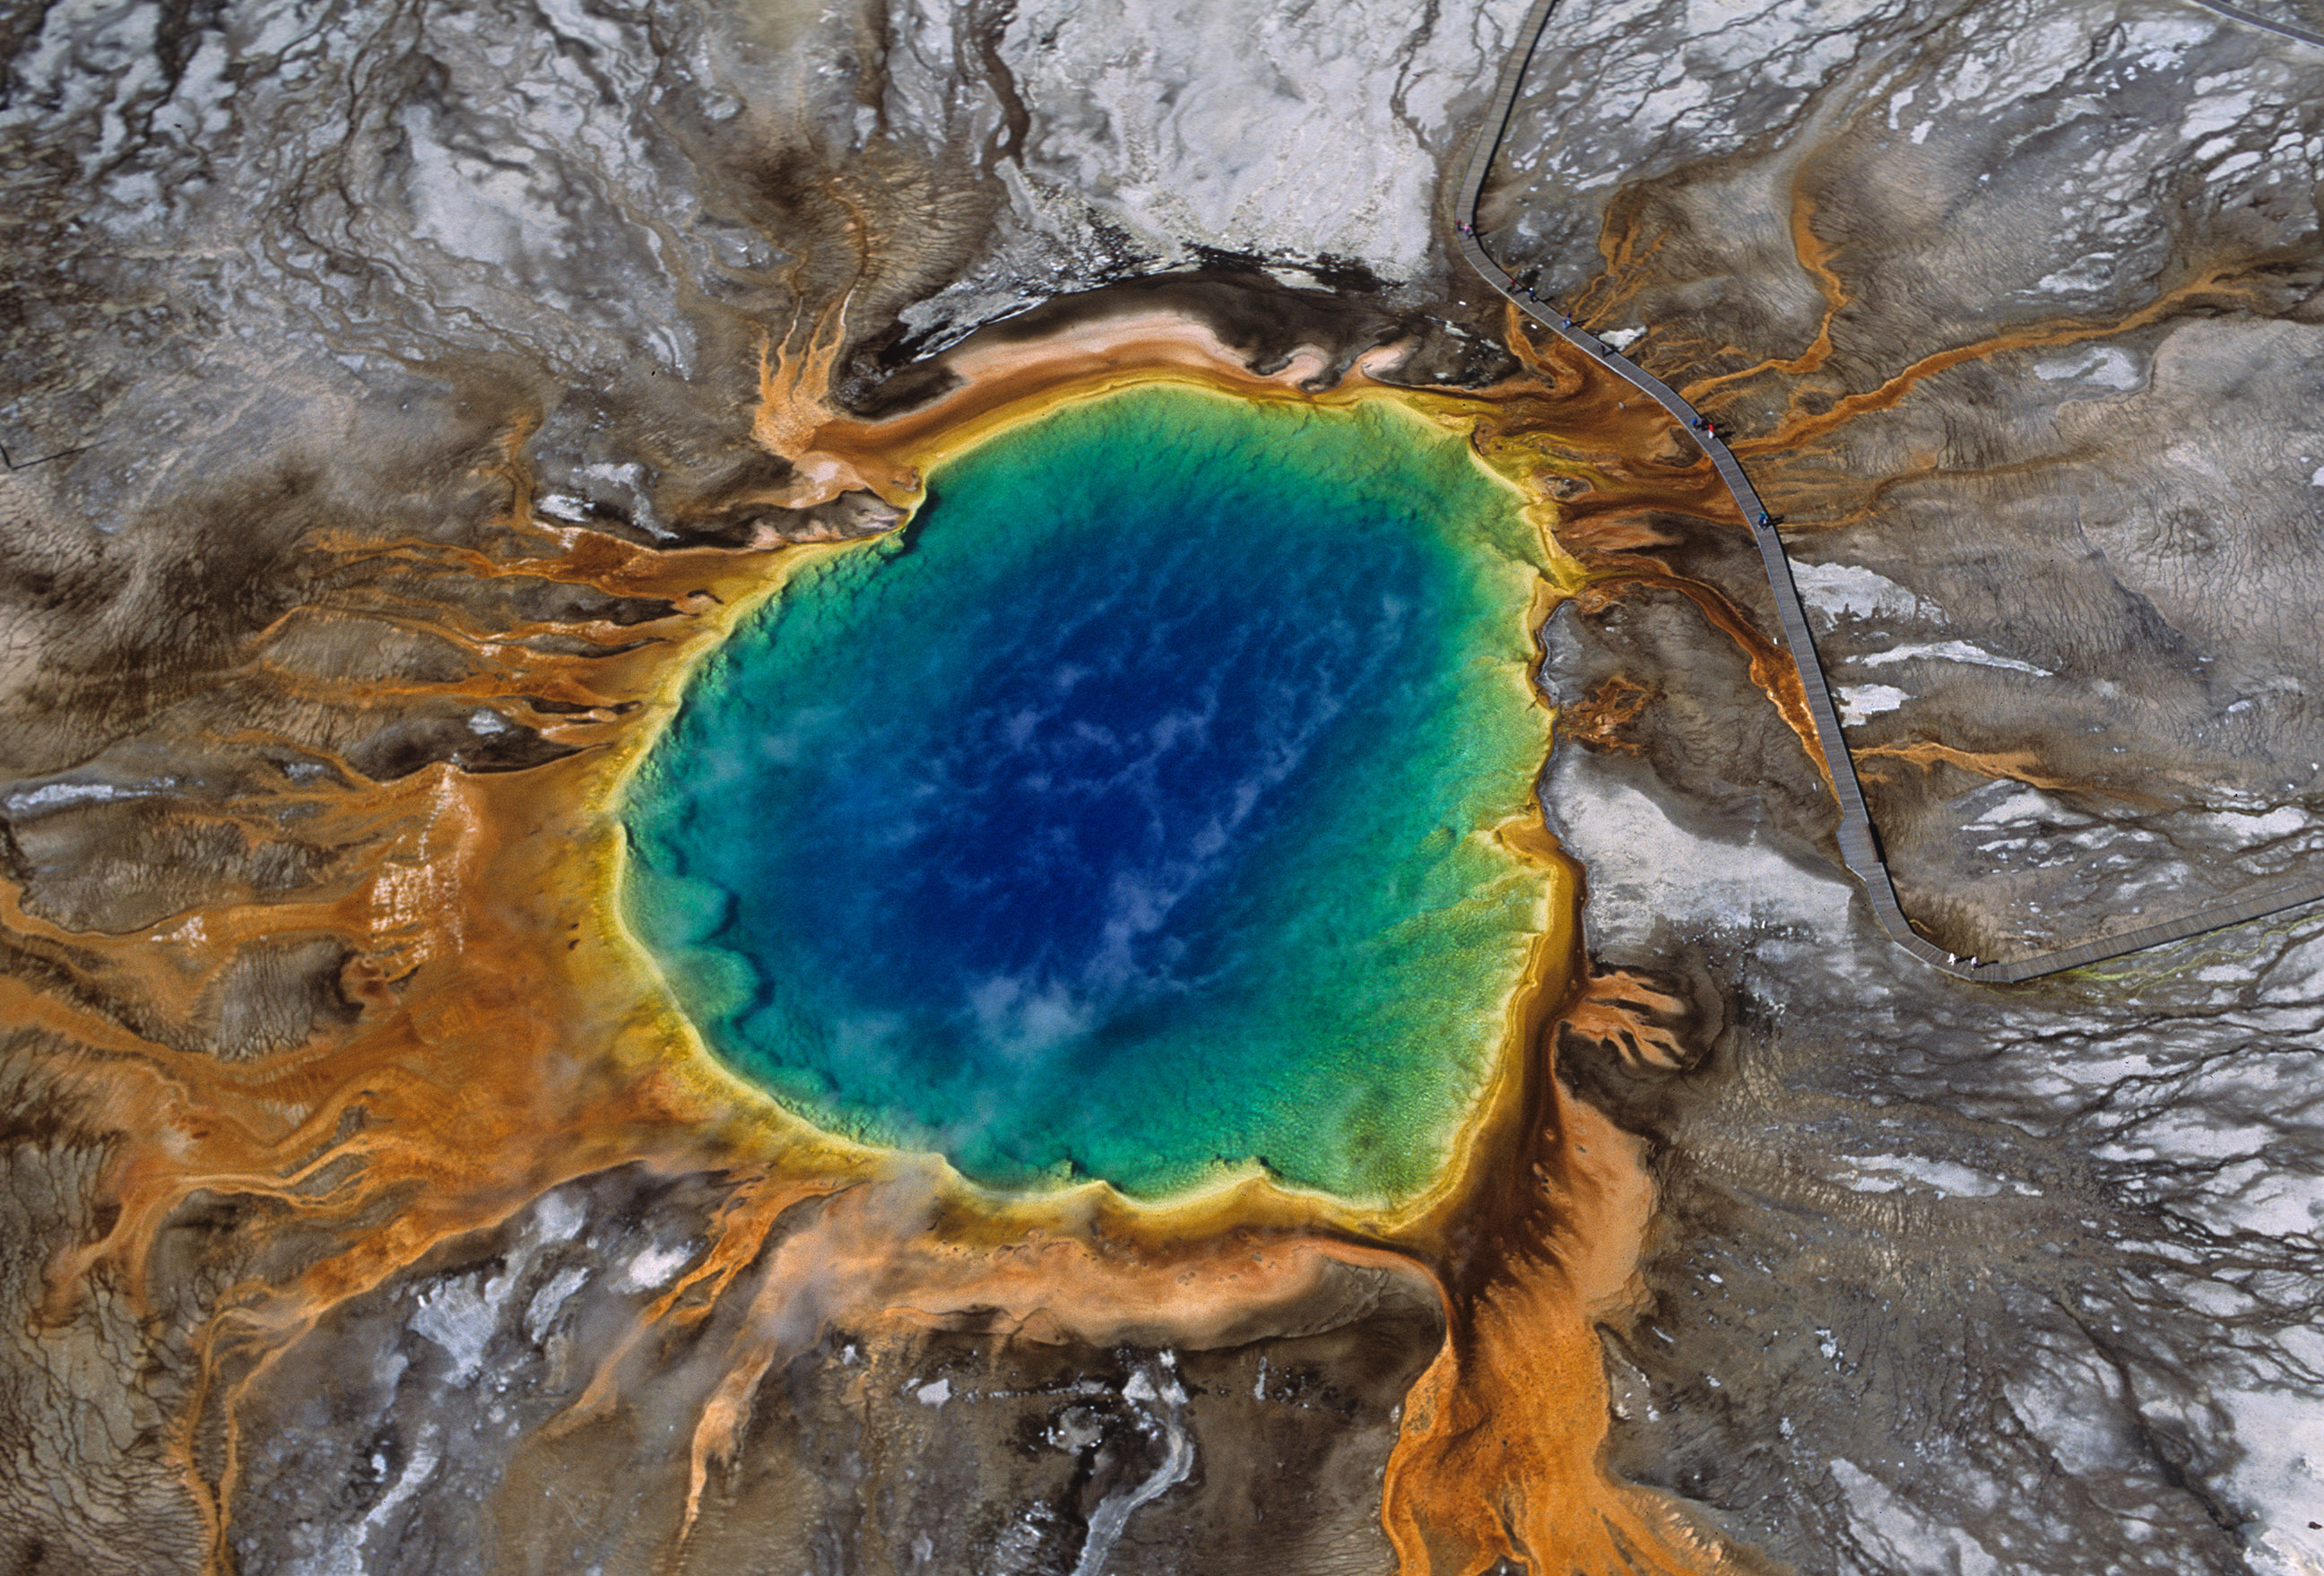 Grand Prismatic Spring, Yellowstone National Park, Wyoming. Photo courtesy Chris Mickey, Media & Public Relations Manager Wyoming Office of Tourism